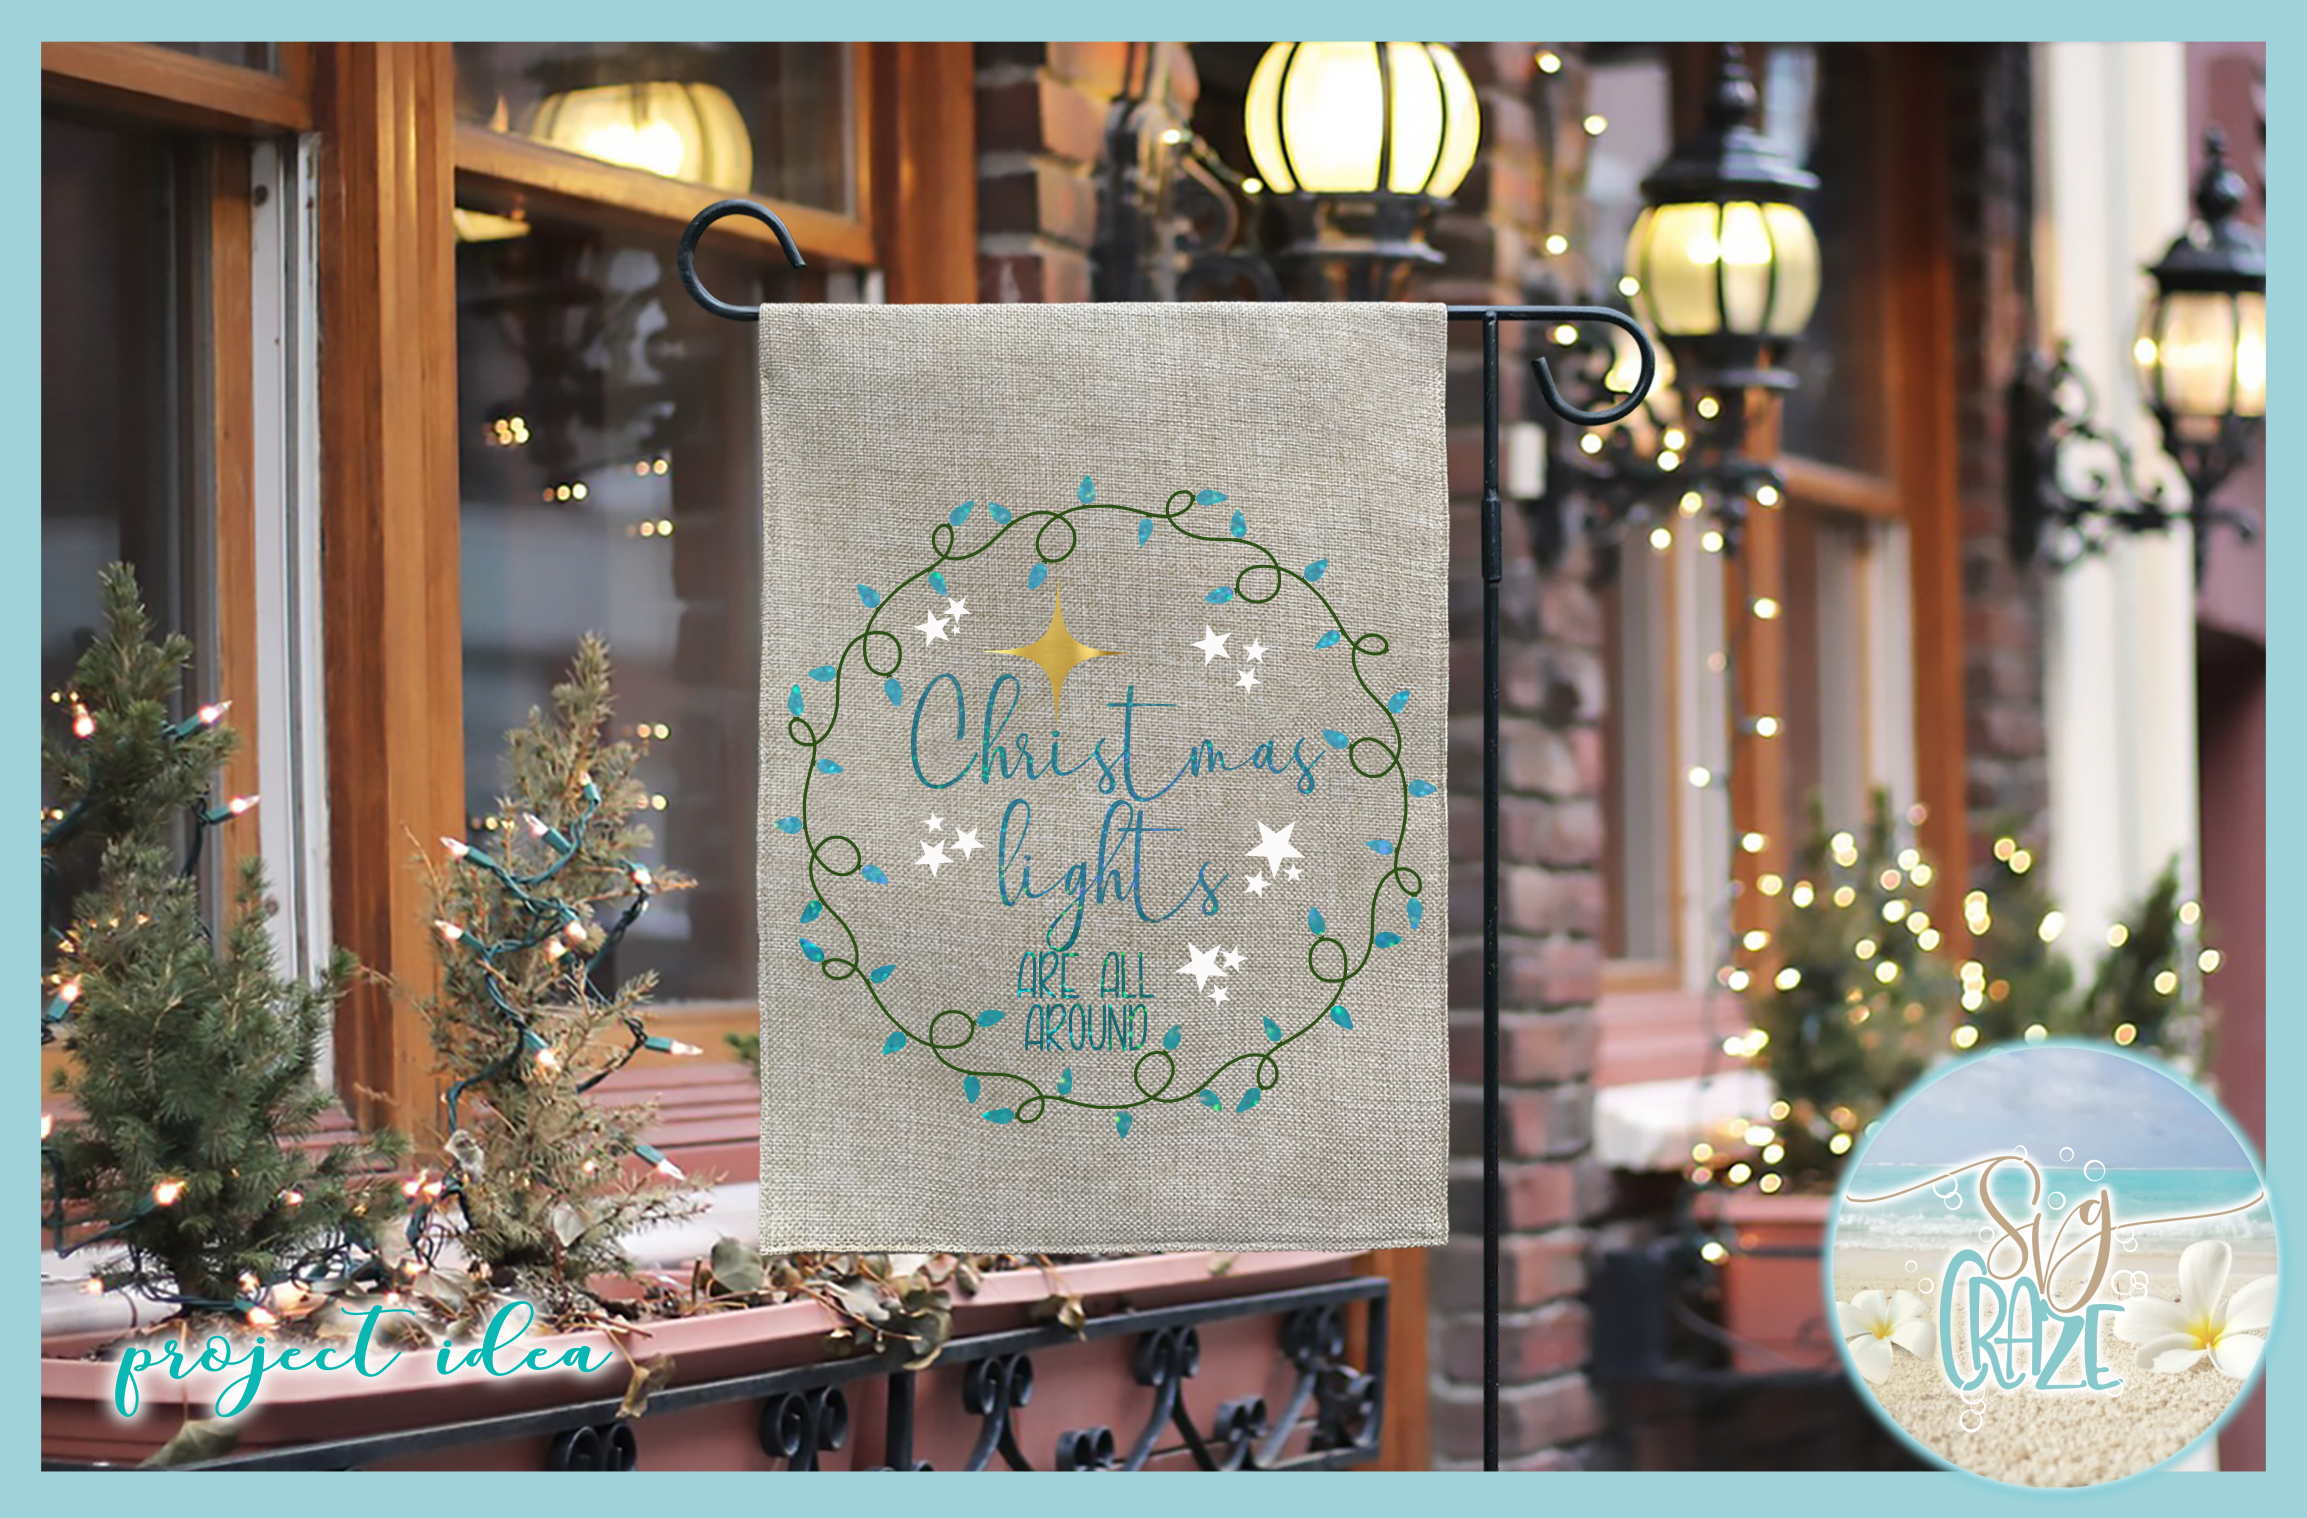 Christmas Lights Are All Around Quote SVG example image 2